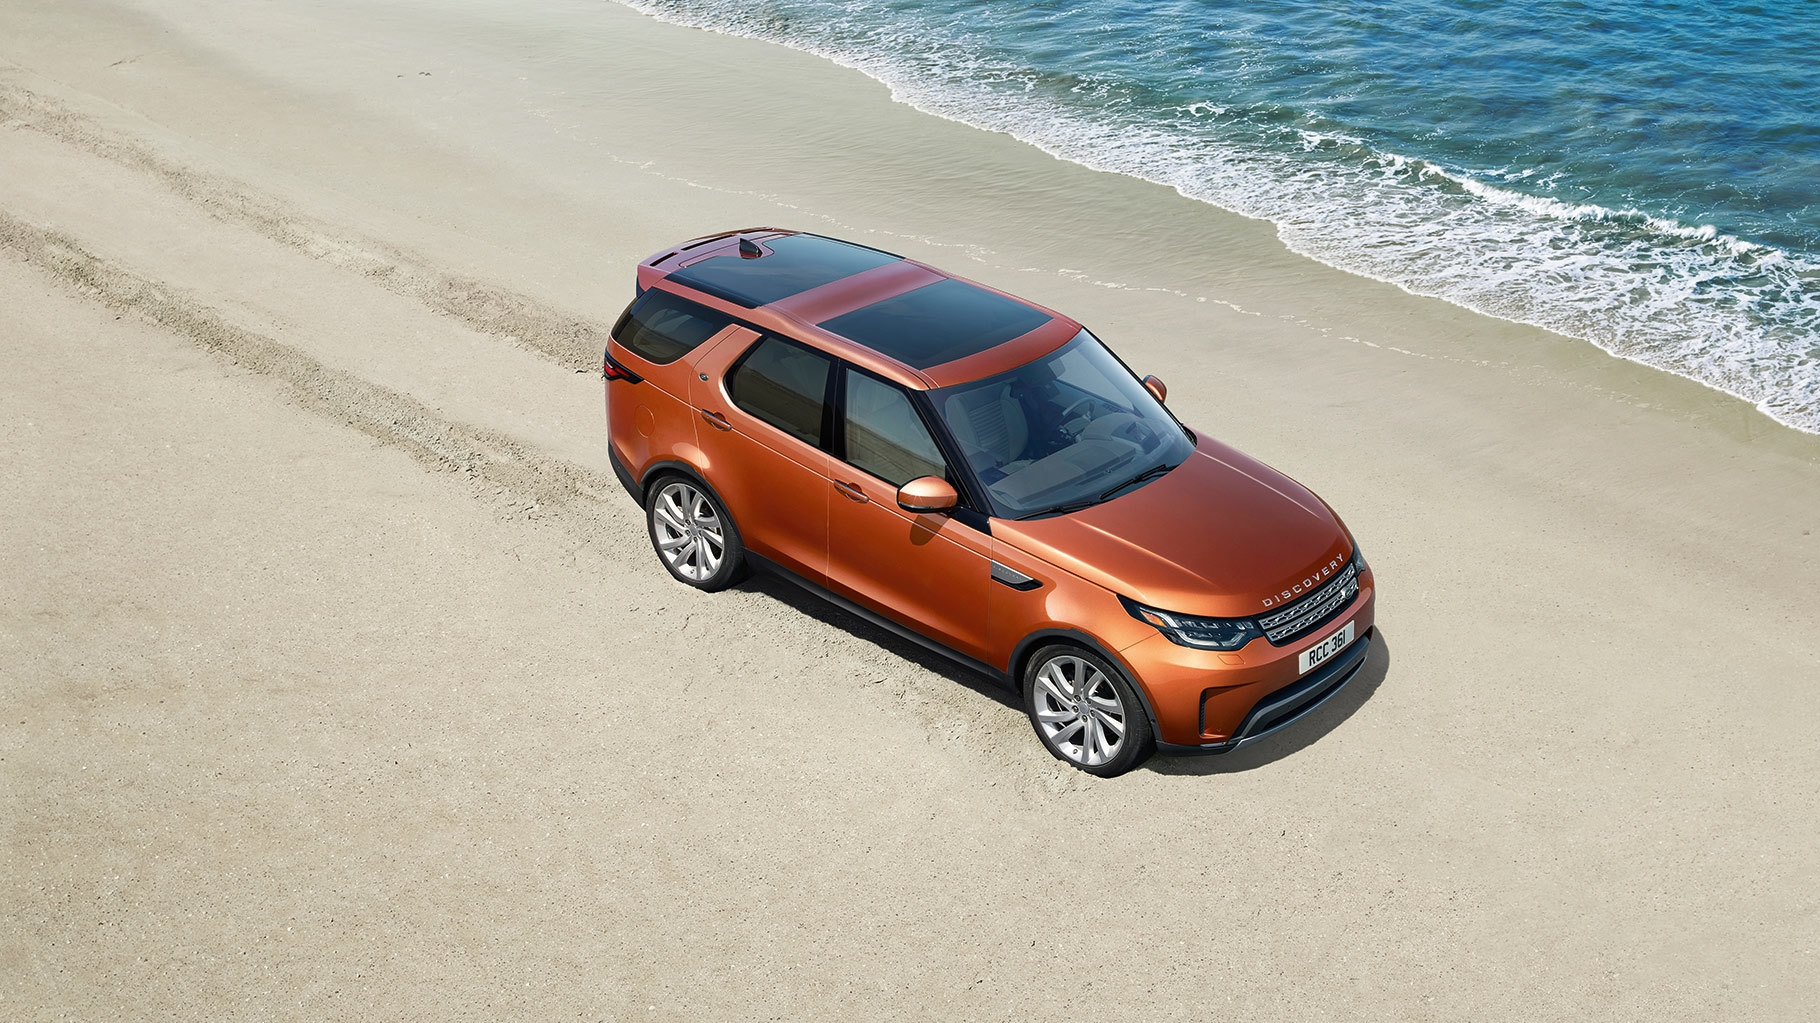 New 2019 Land Rover Discovery model in Pasadena